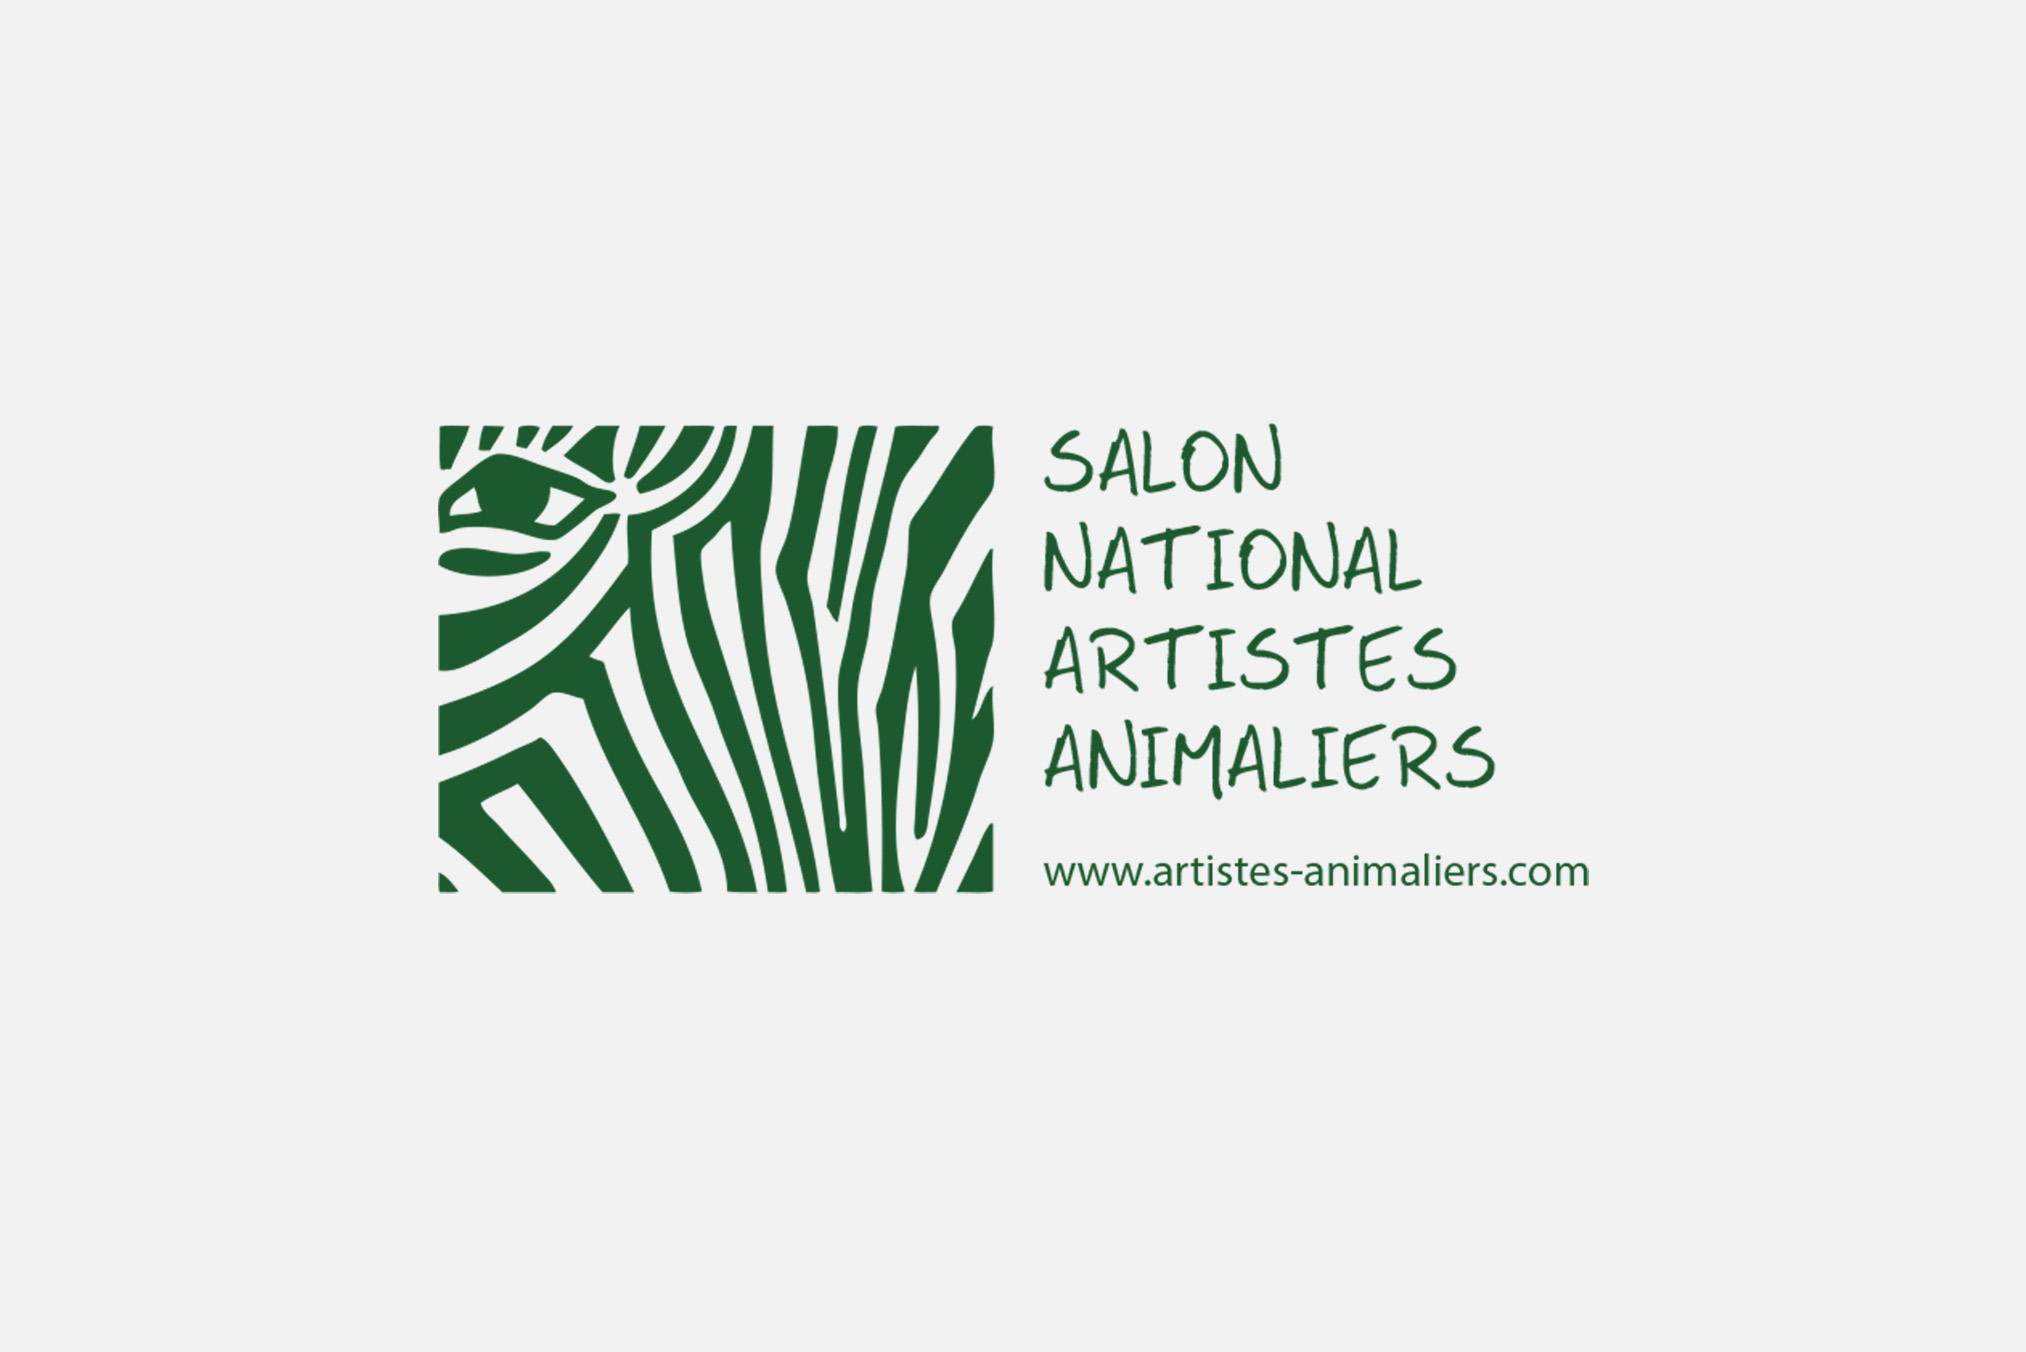 Salon national artistes animaliers